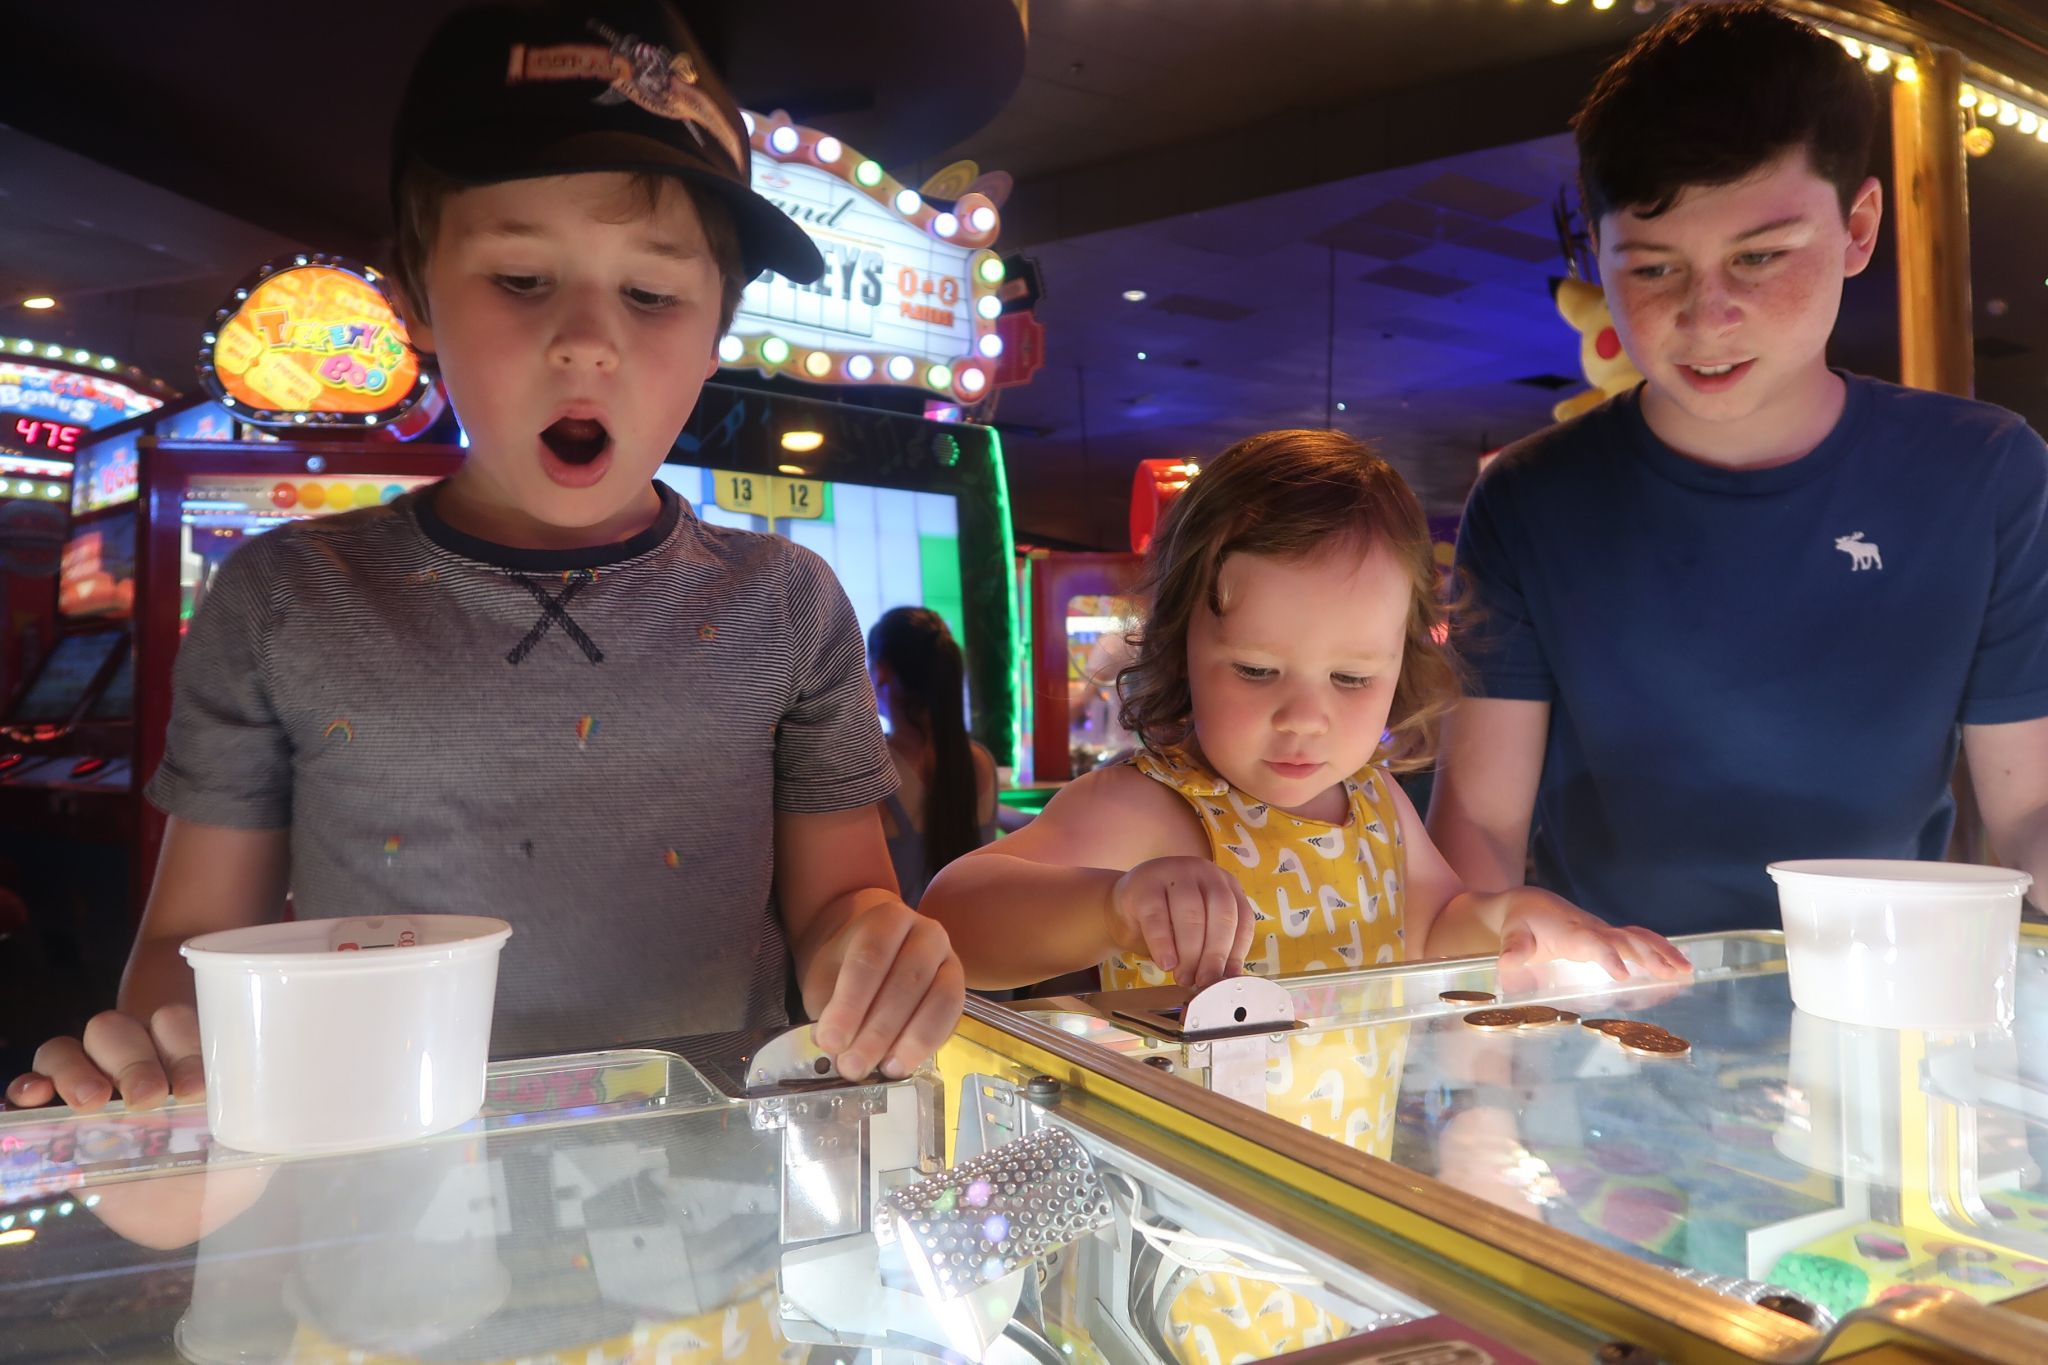 Three kids playing the 2p slot machines